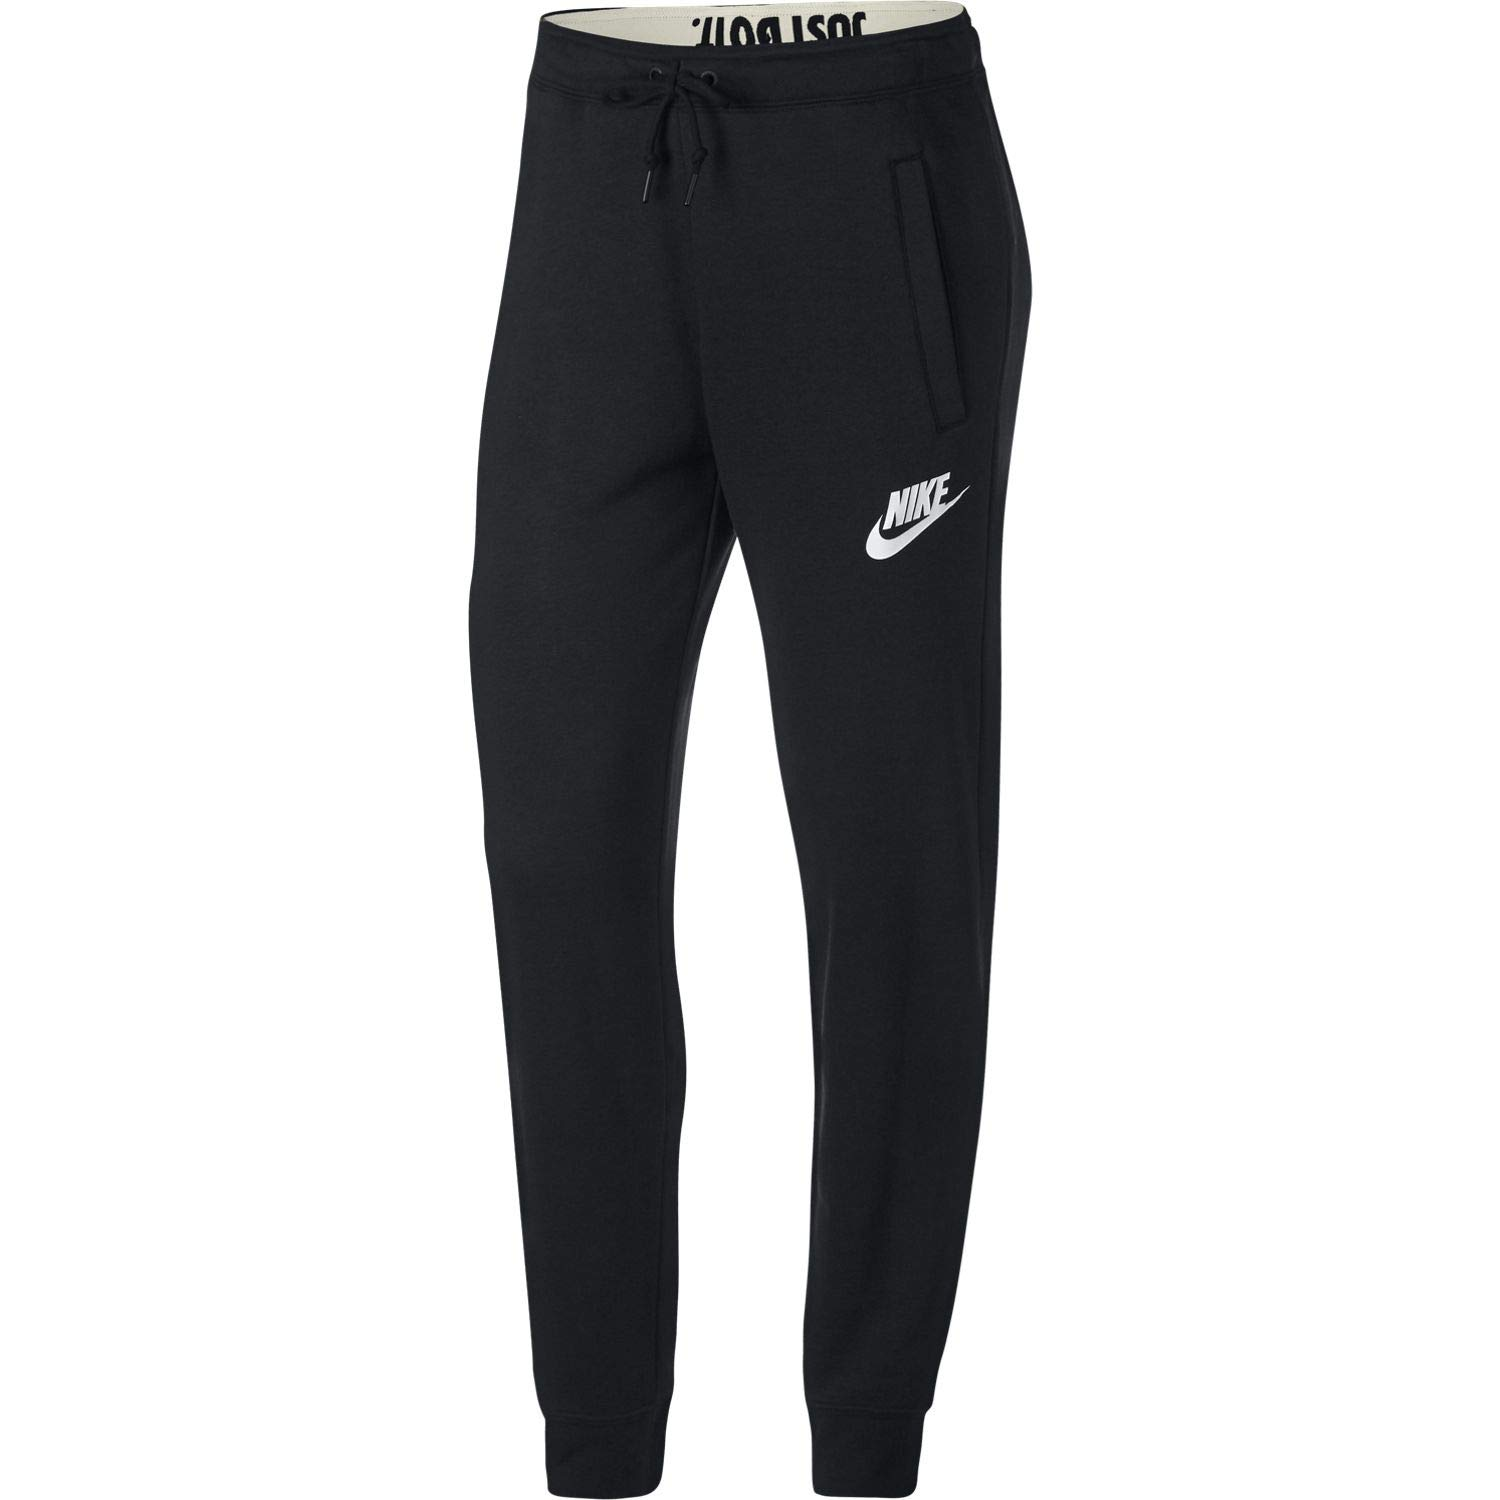 NIKE Women's Rally Jogger Pants (Black/Black/White, Small)